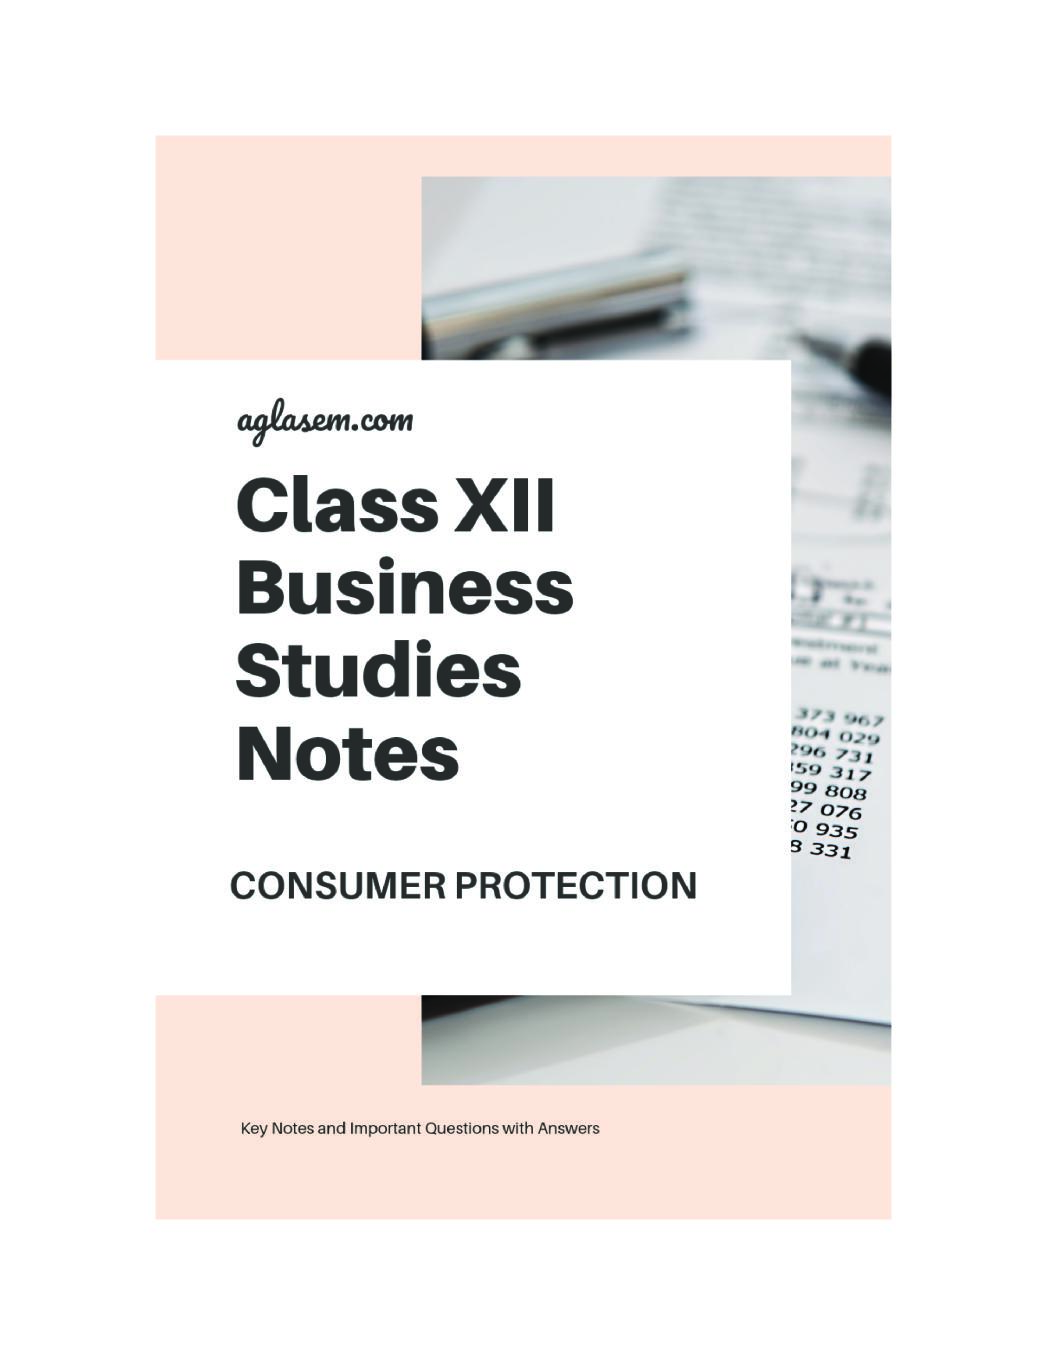 Class 12 Business Studies Notes for Consumer Protection